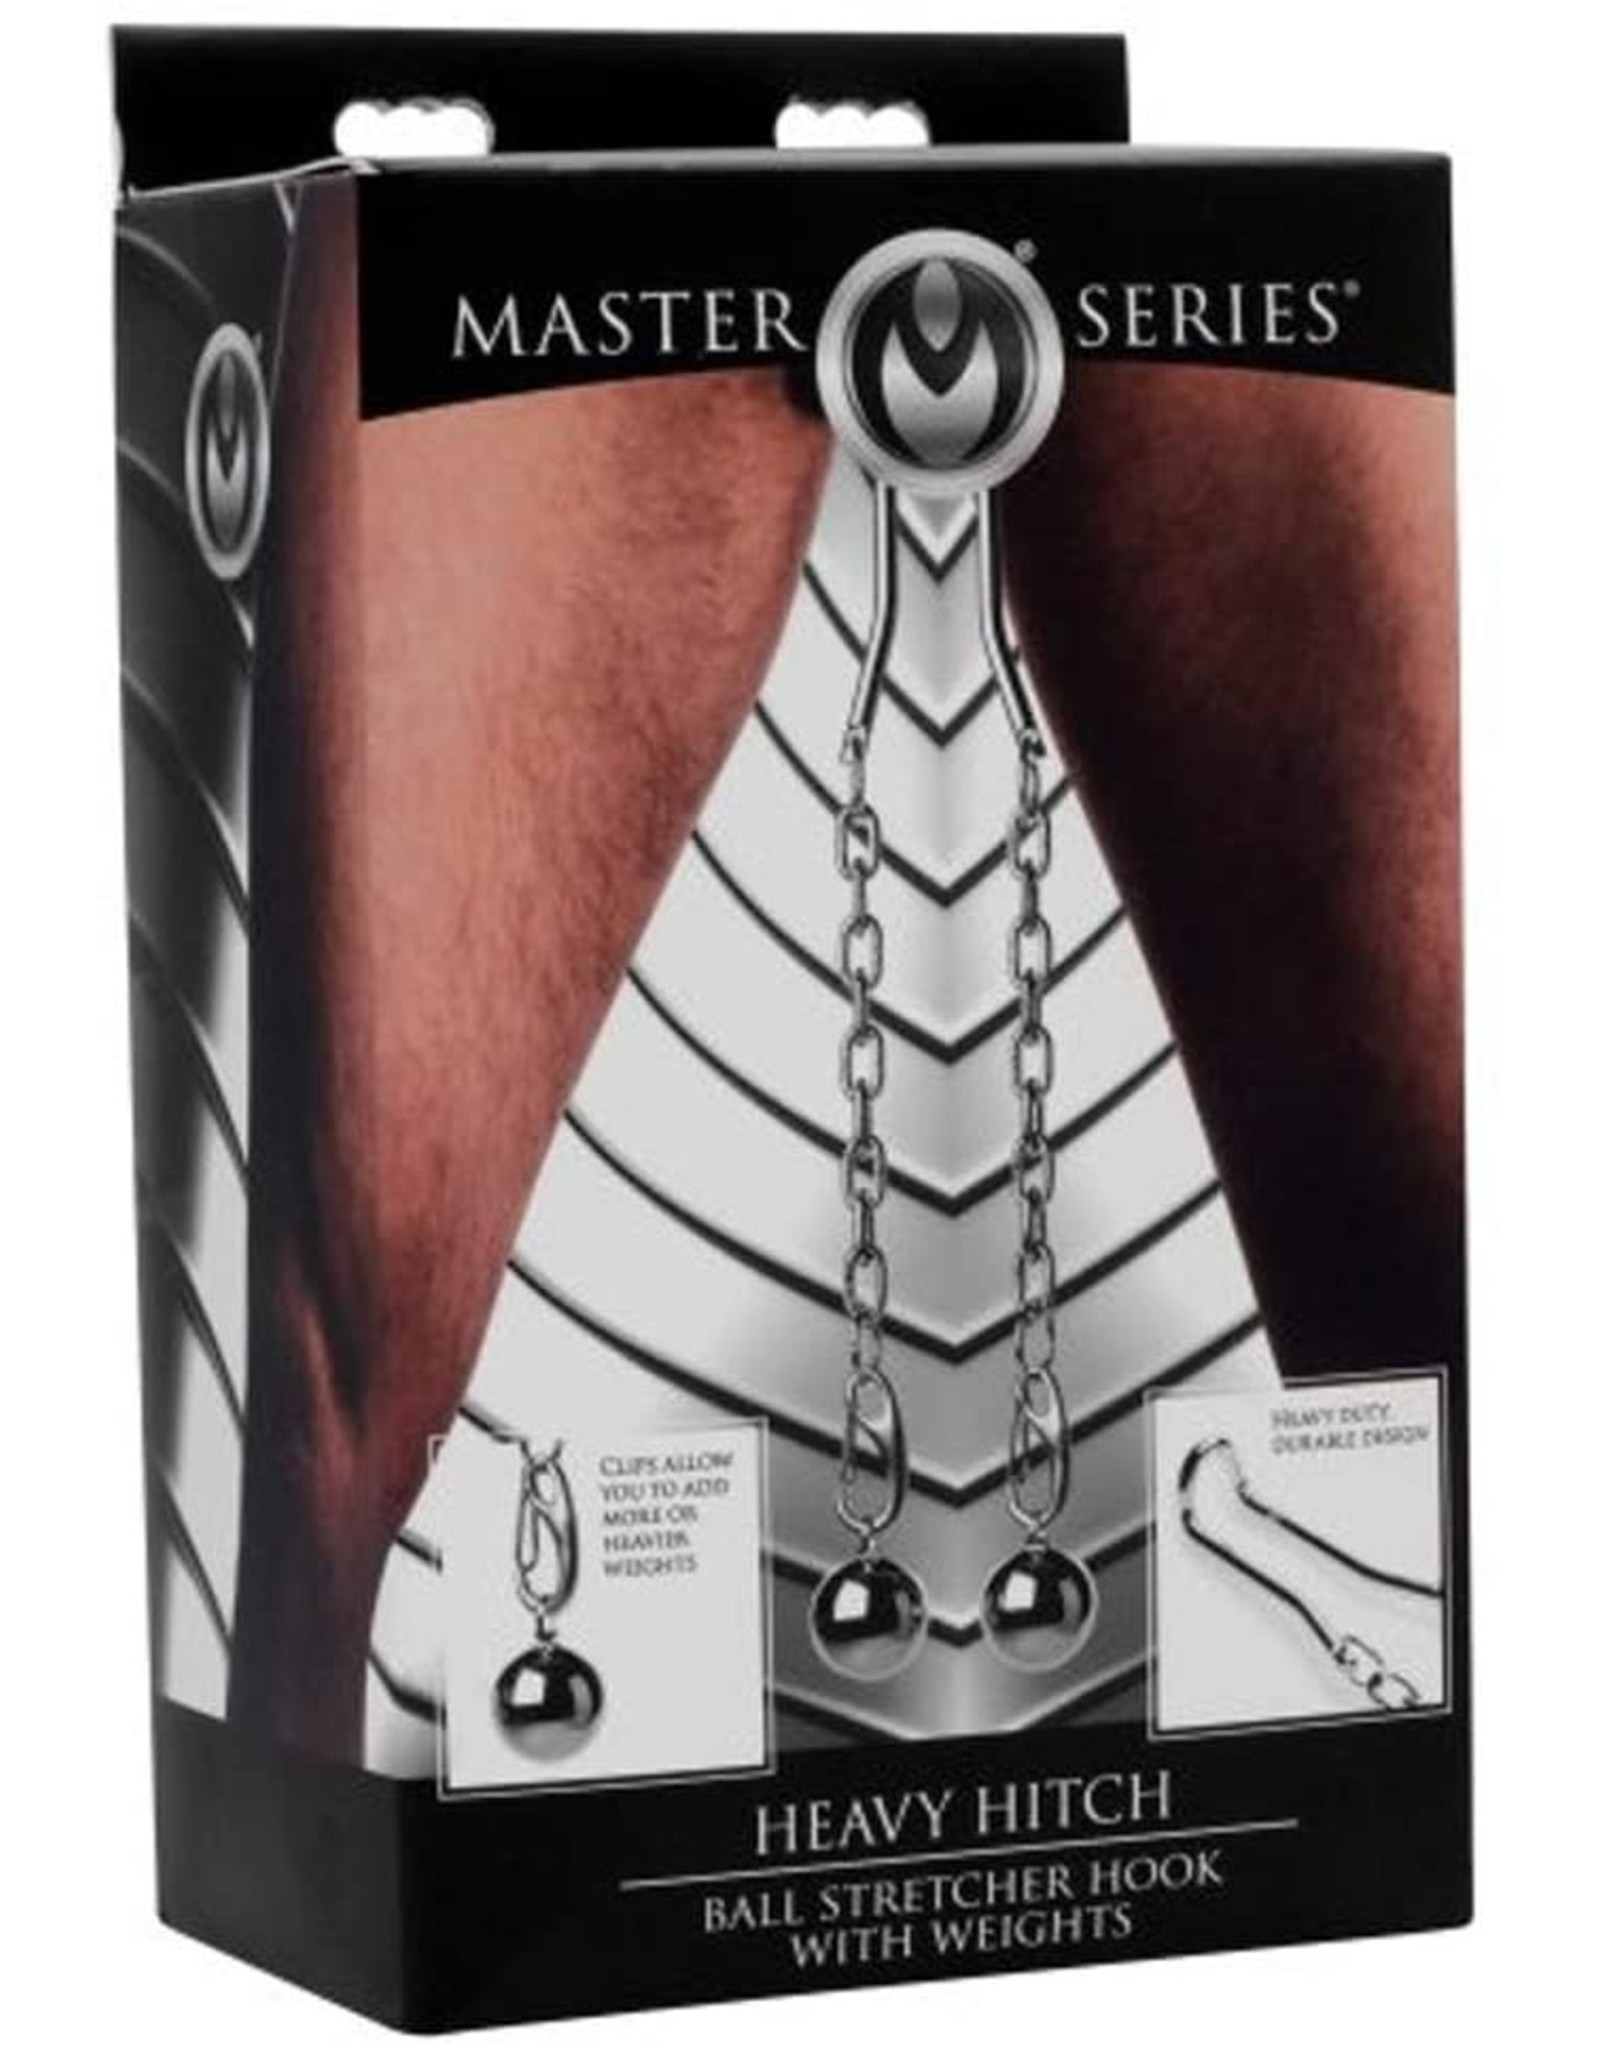 Master Series Master Series Heavy Hitch Ball Stretcher Hook with Weights